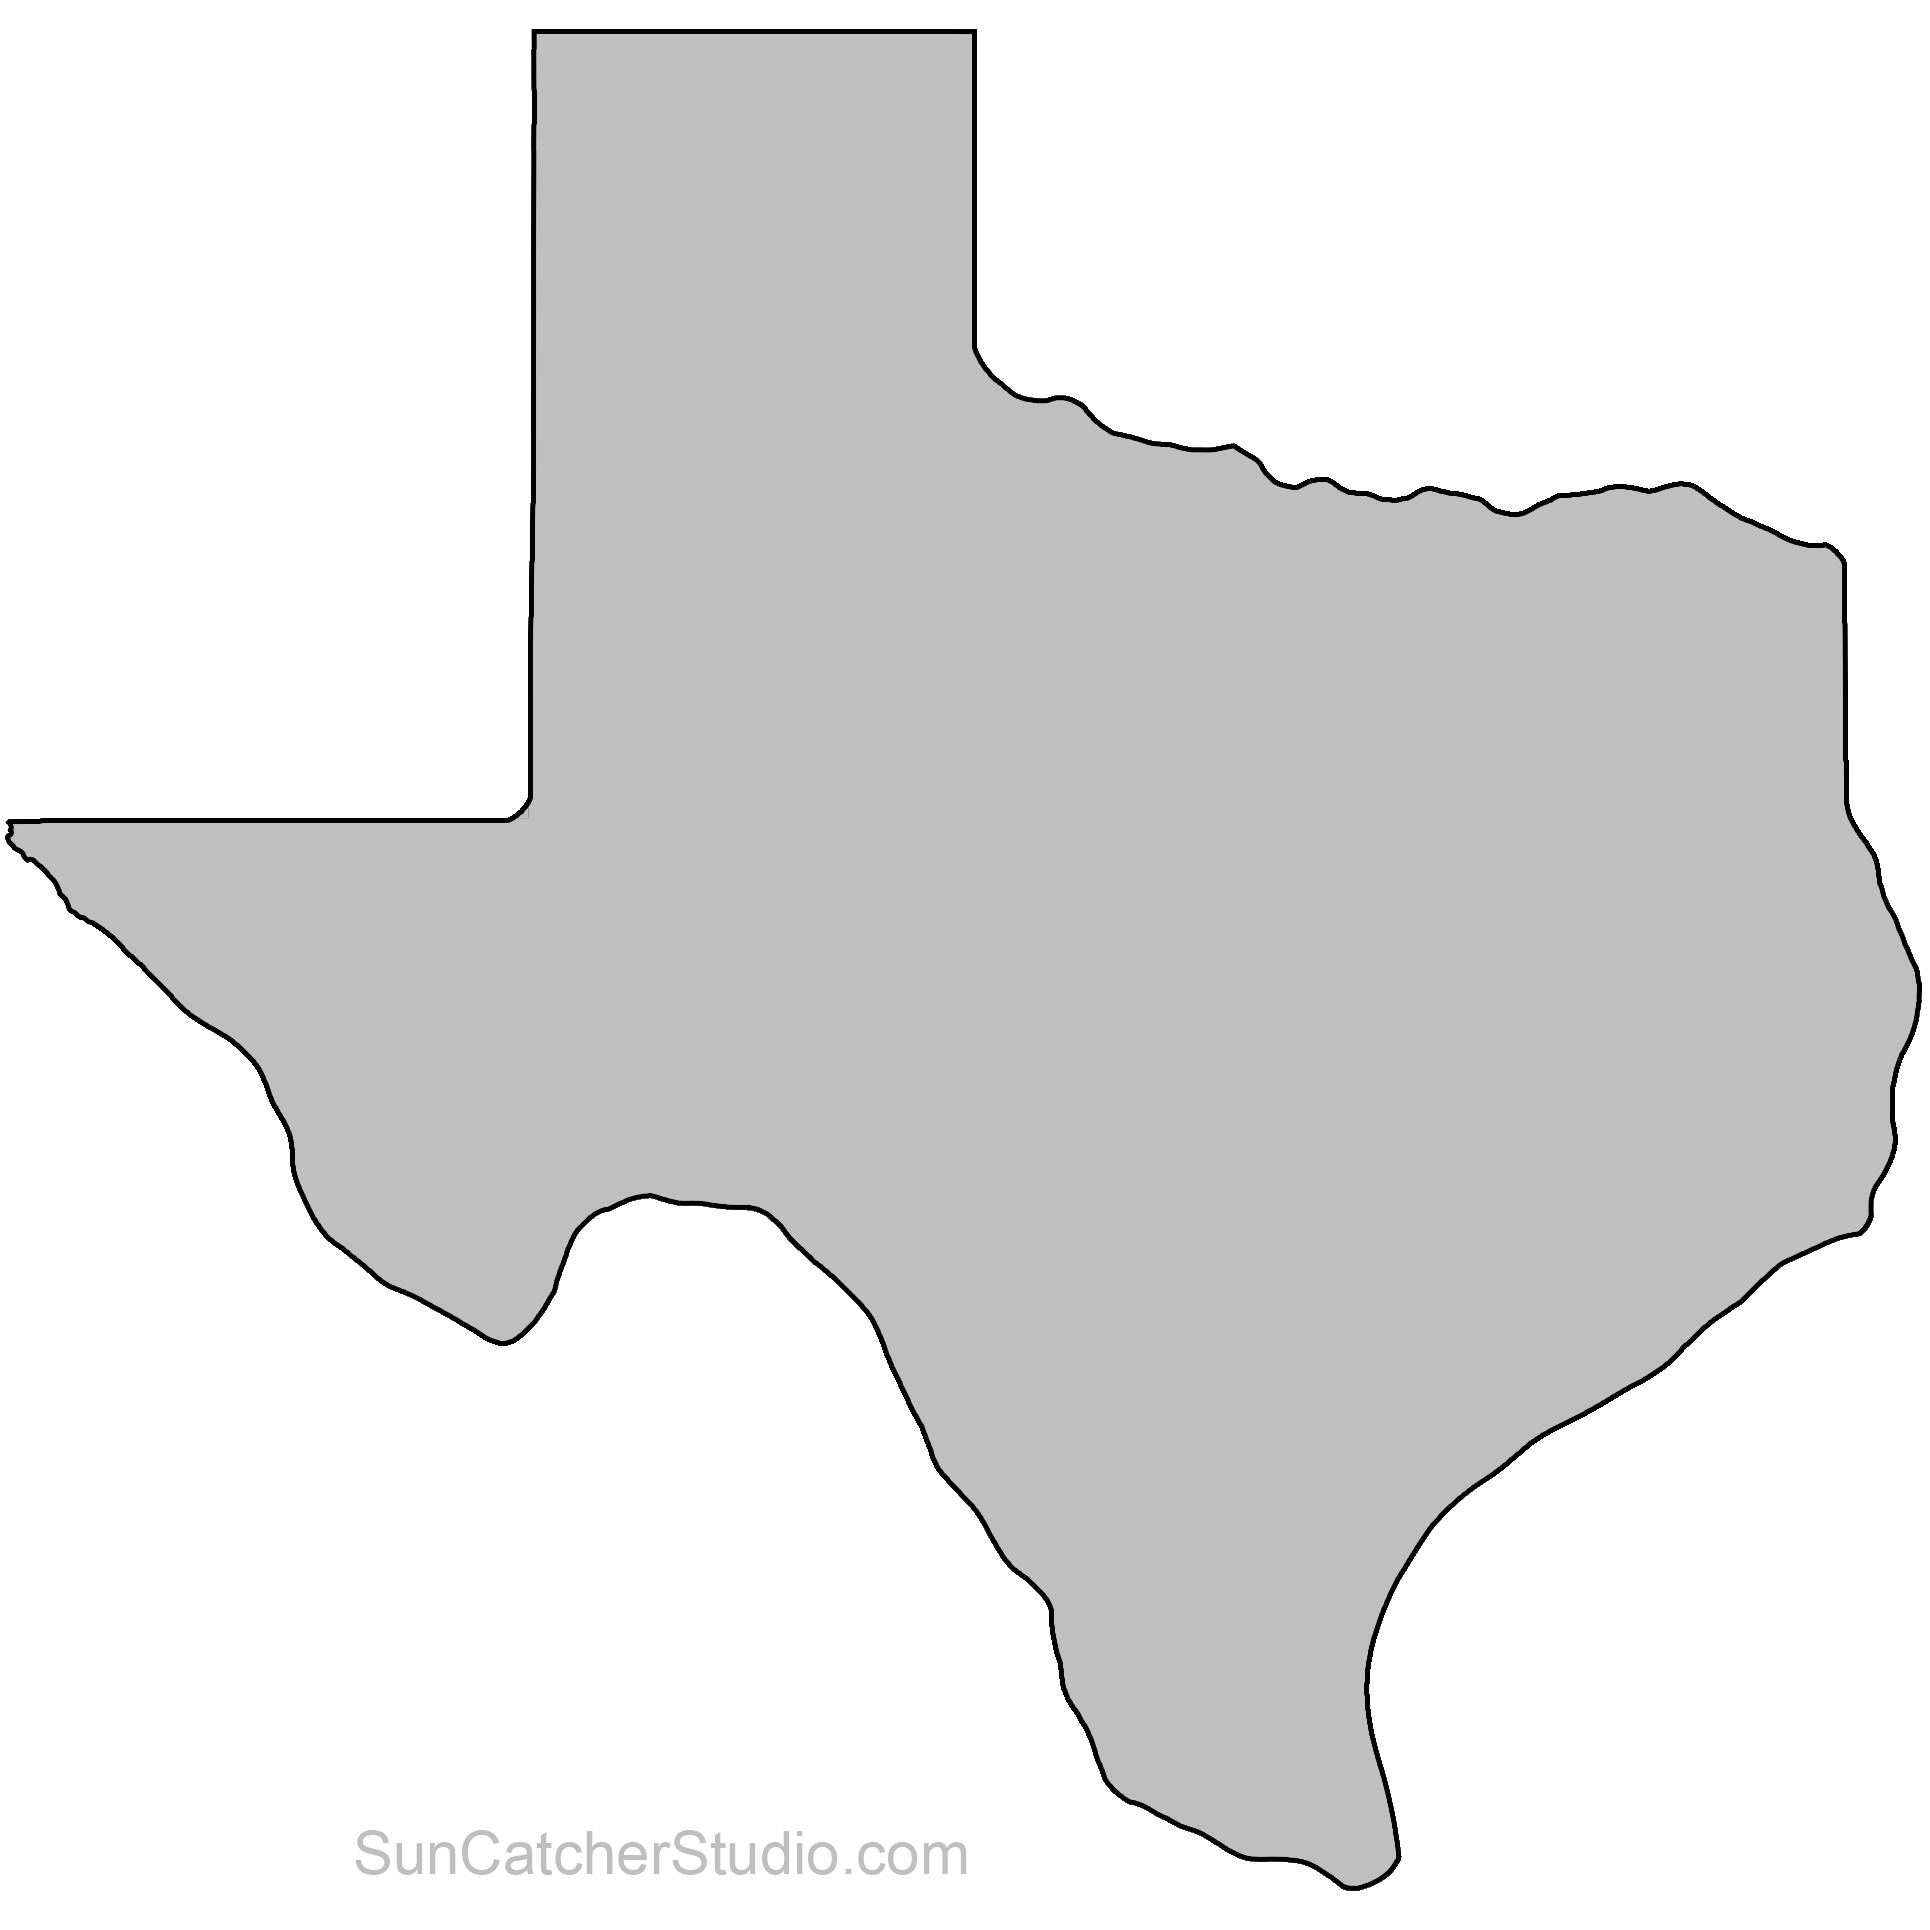 Texas outline png. State outlines maps stencils